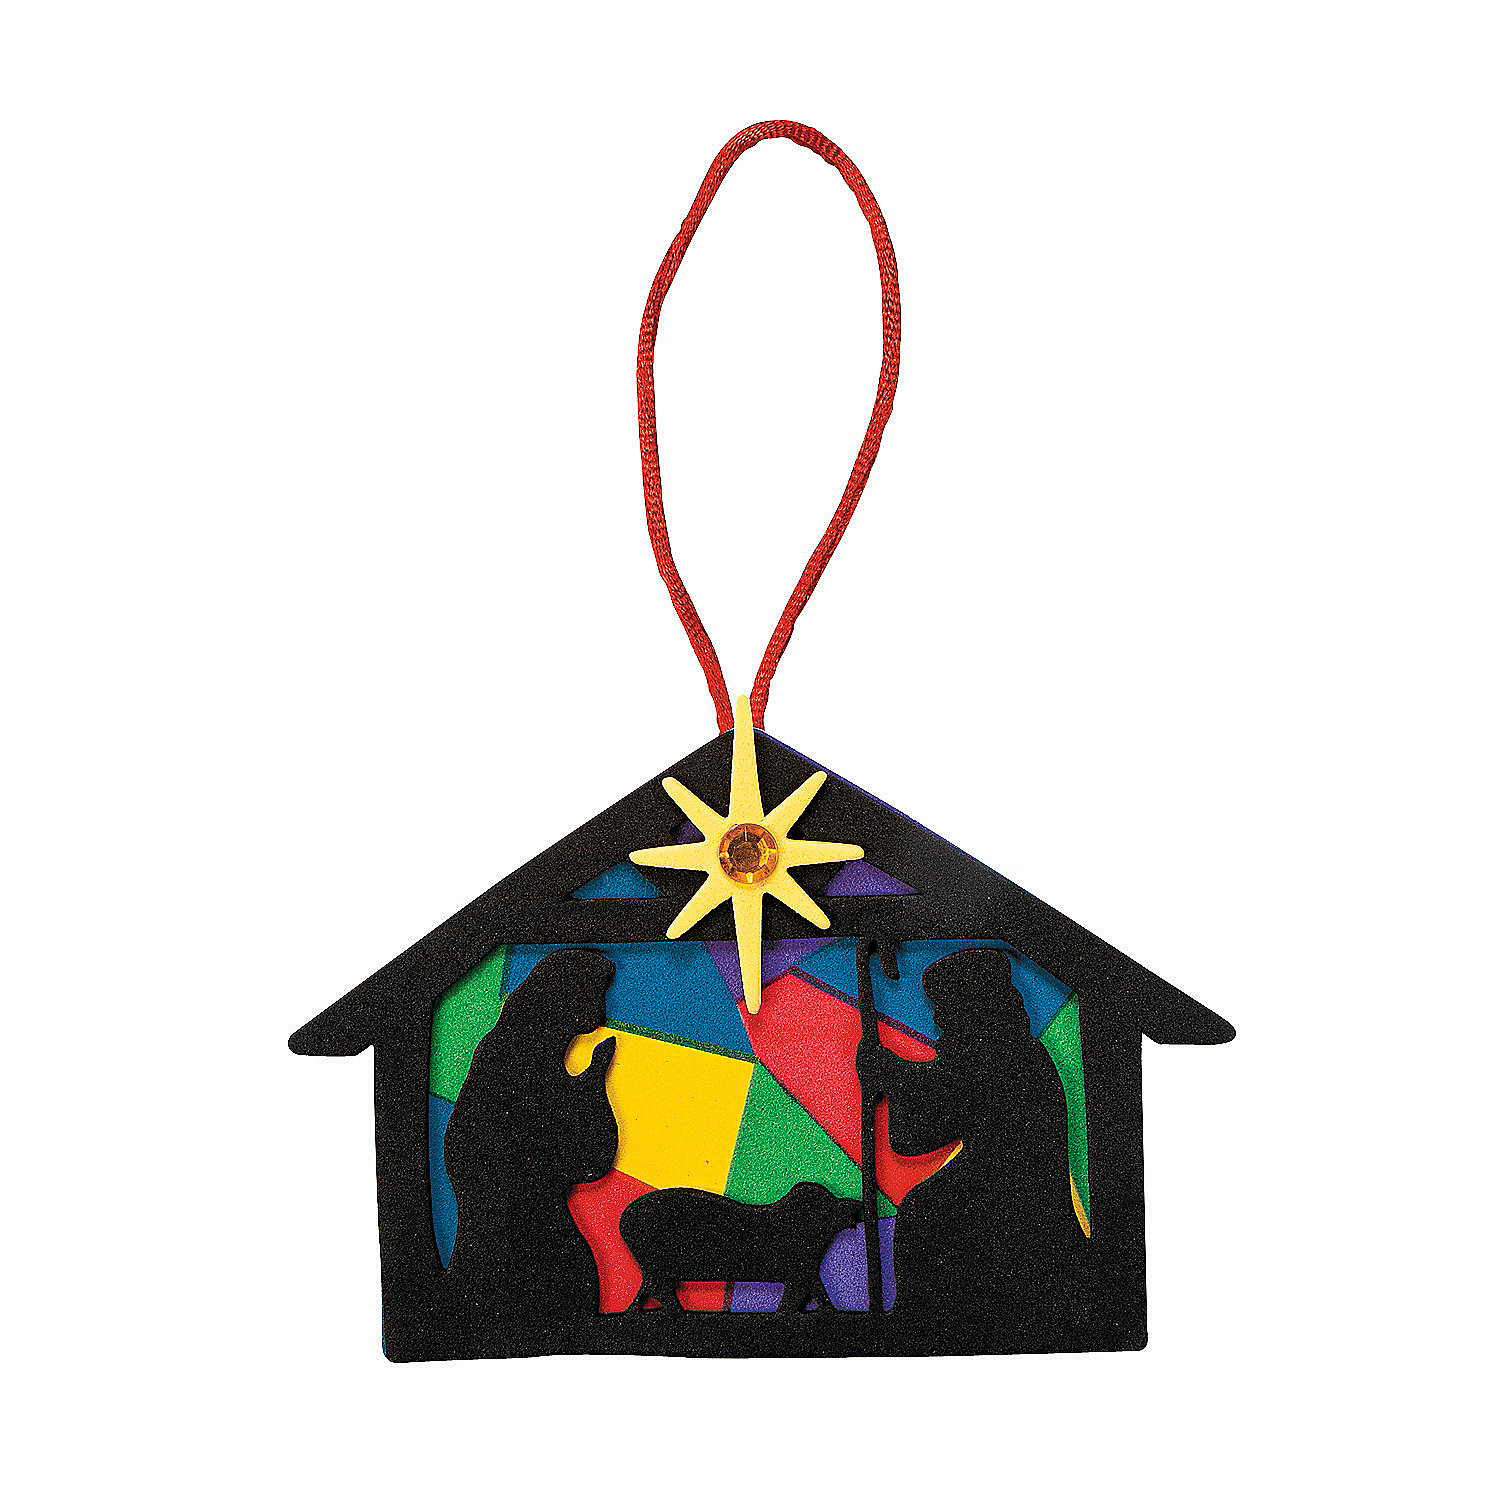 Nativity Silhouette Christmas Ornament Craft Kit ...